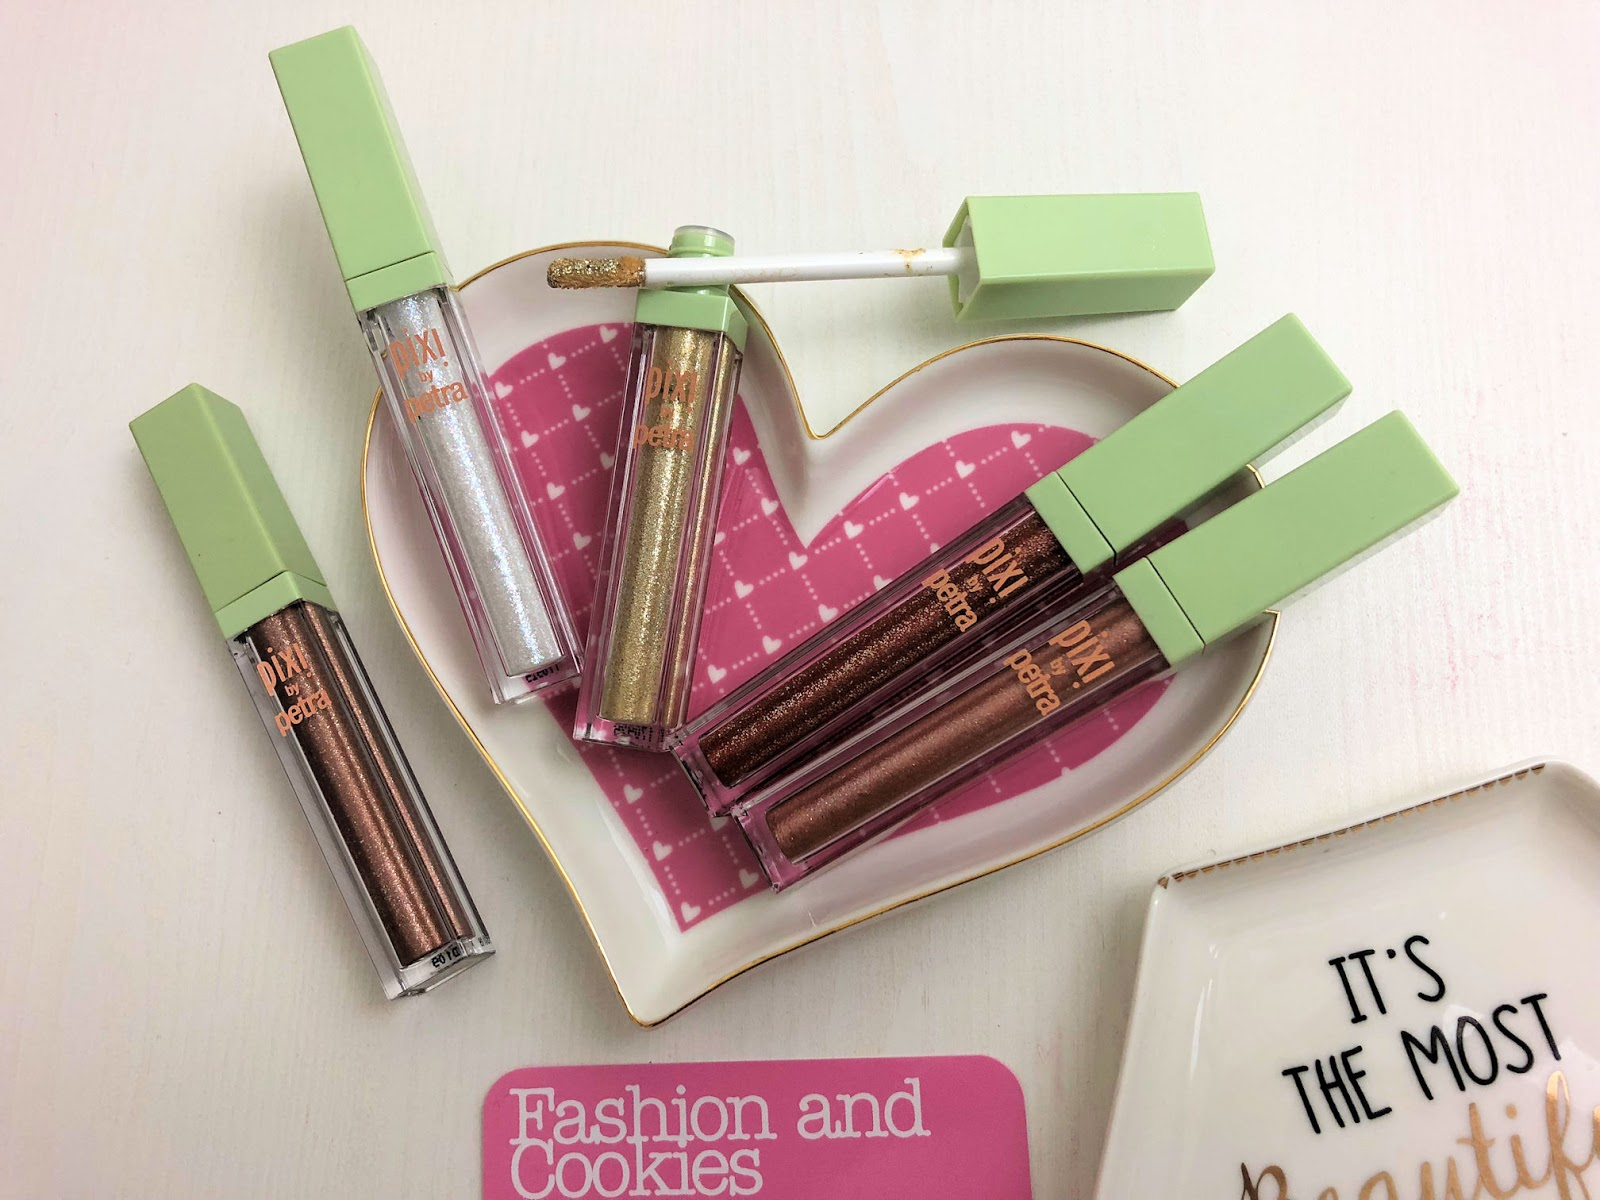 Pixi glow in a box collection review on Fashion and Cookies beauty blog, beauty blogger